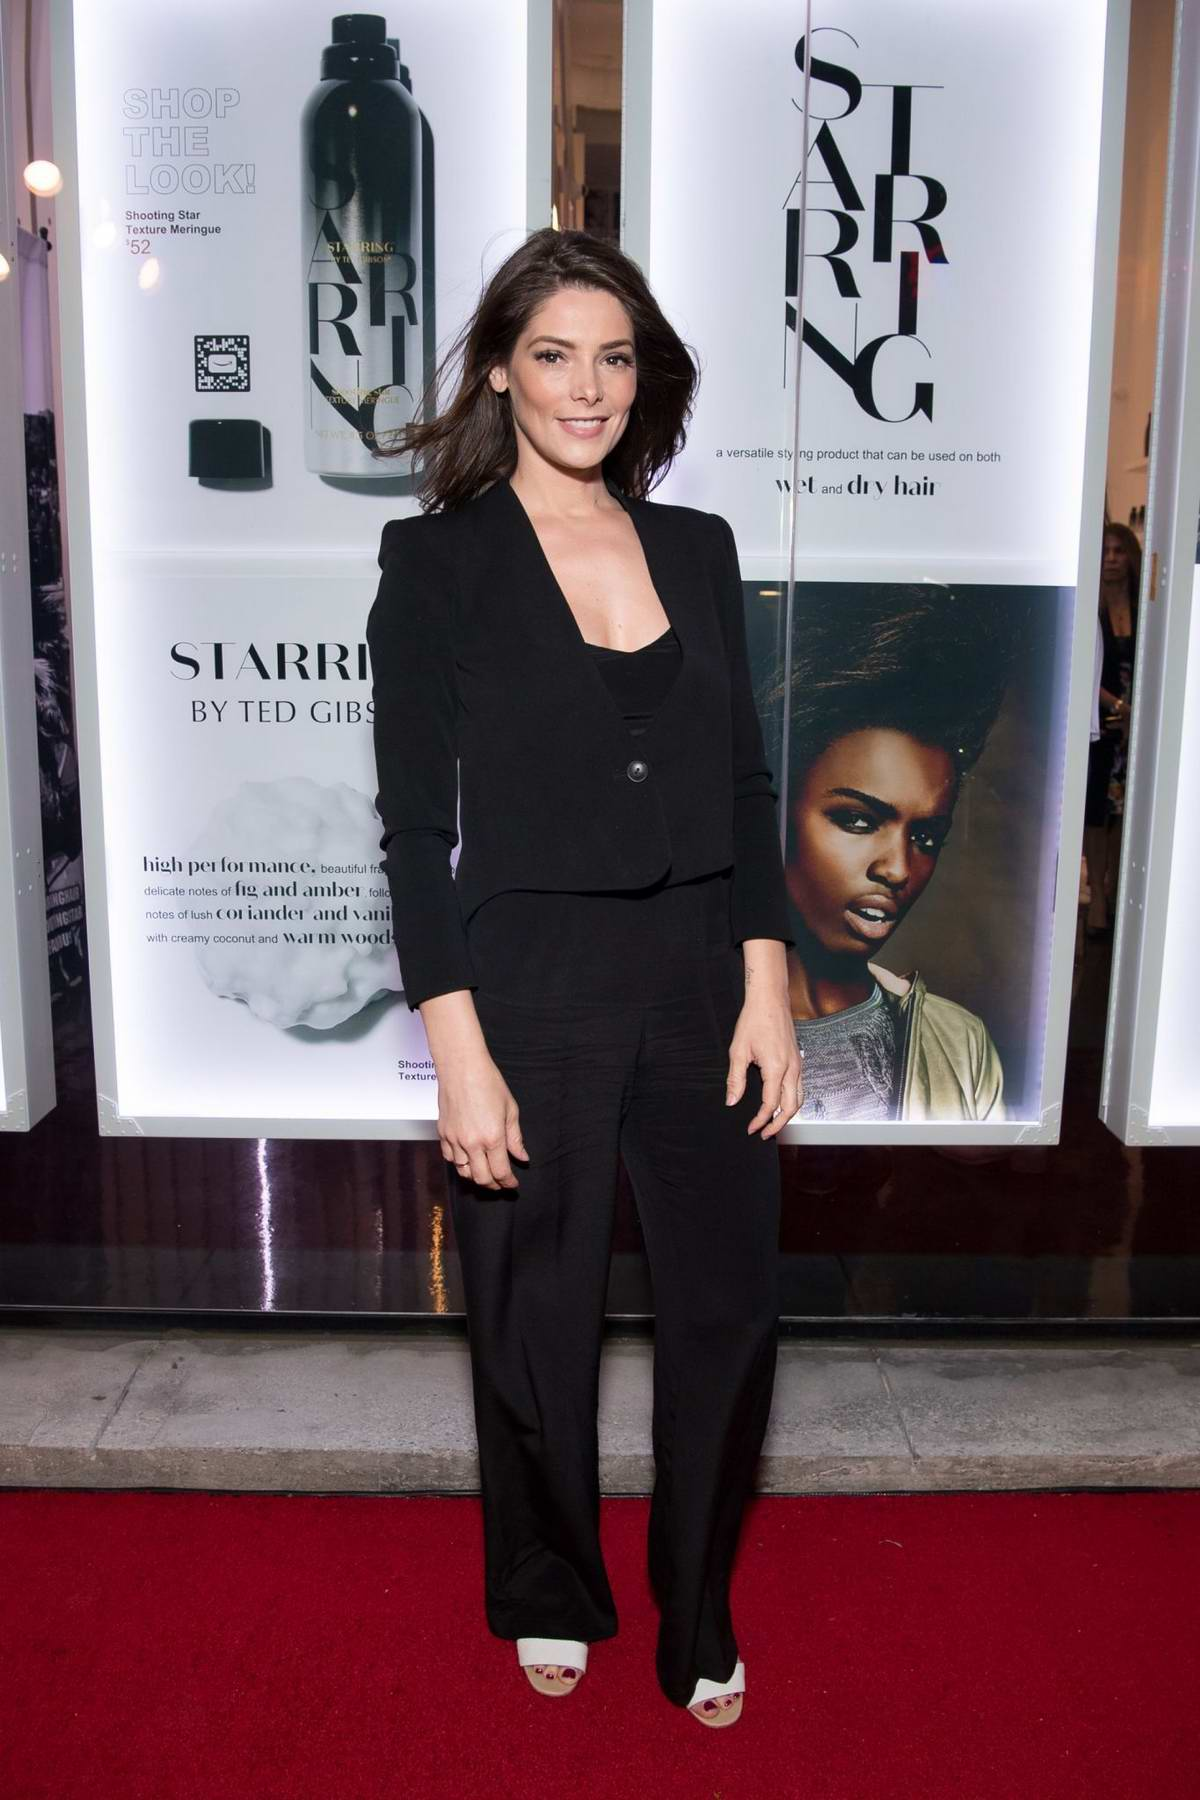 Ashley Greene attends 'STARRING by Ted Gibson' Salon opening in Los Angeles